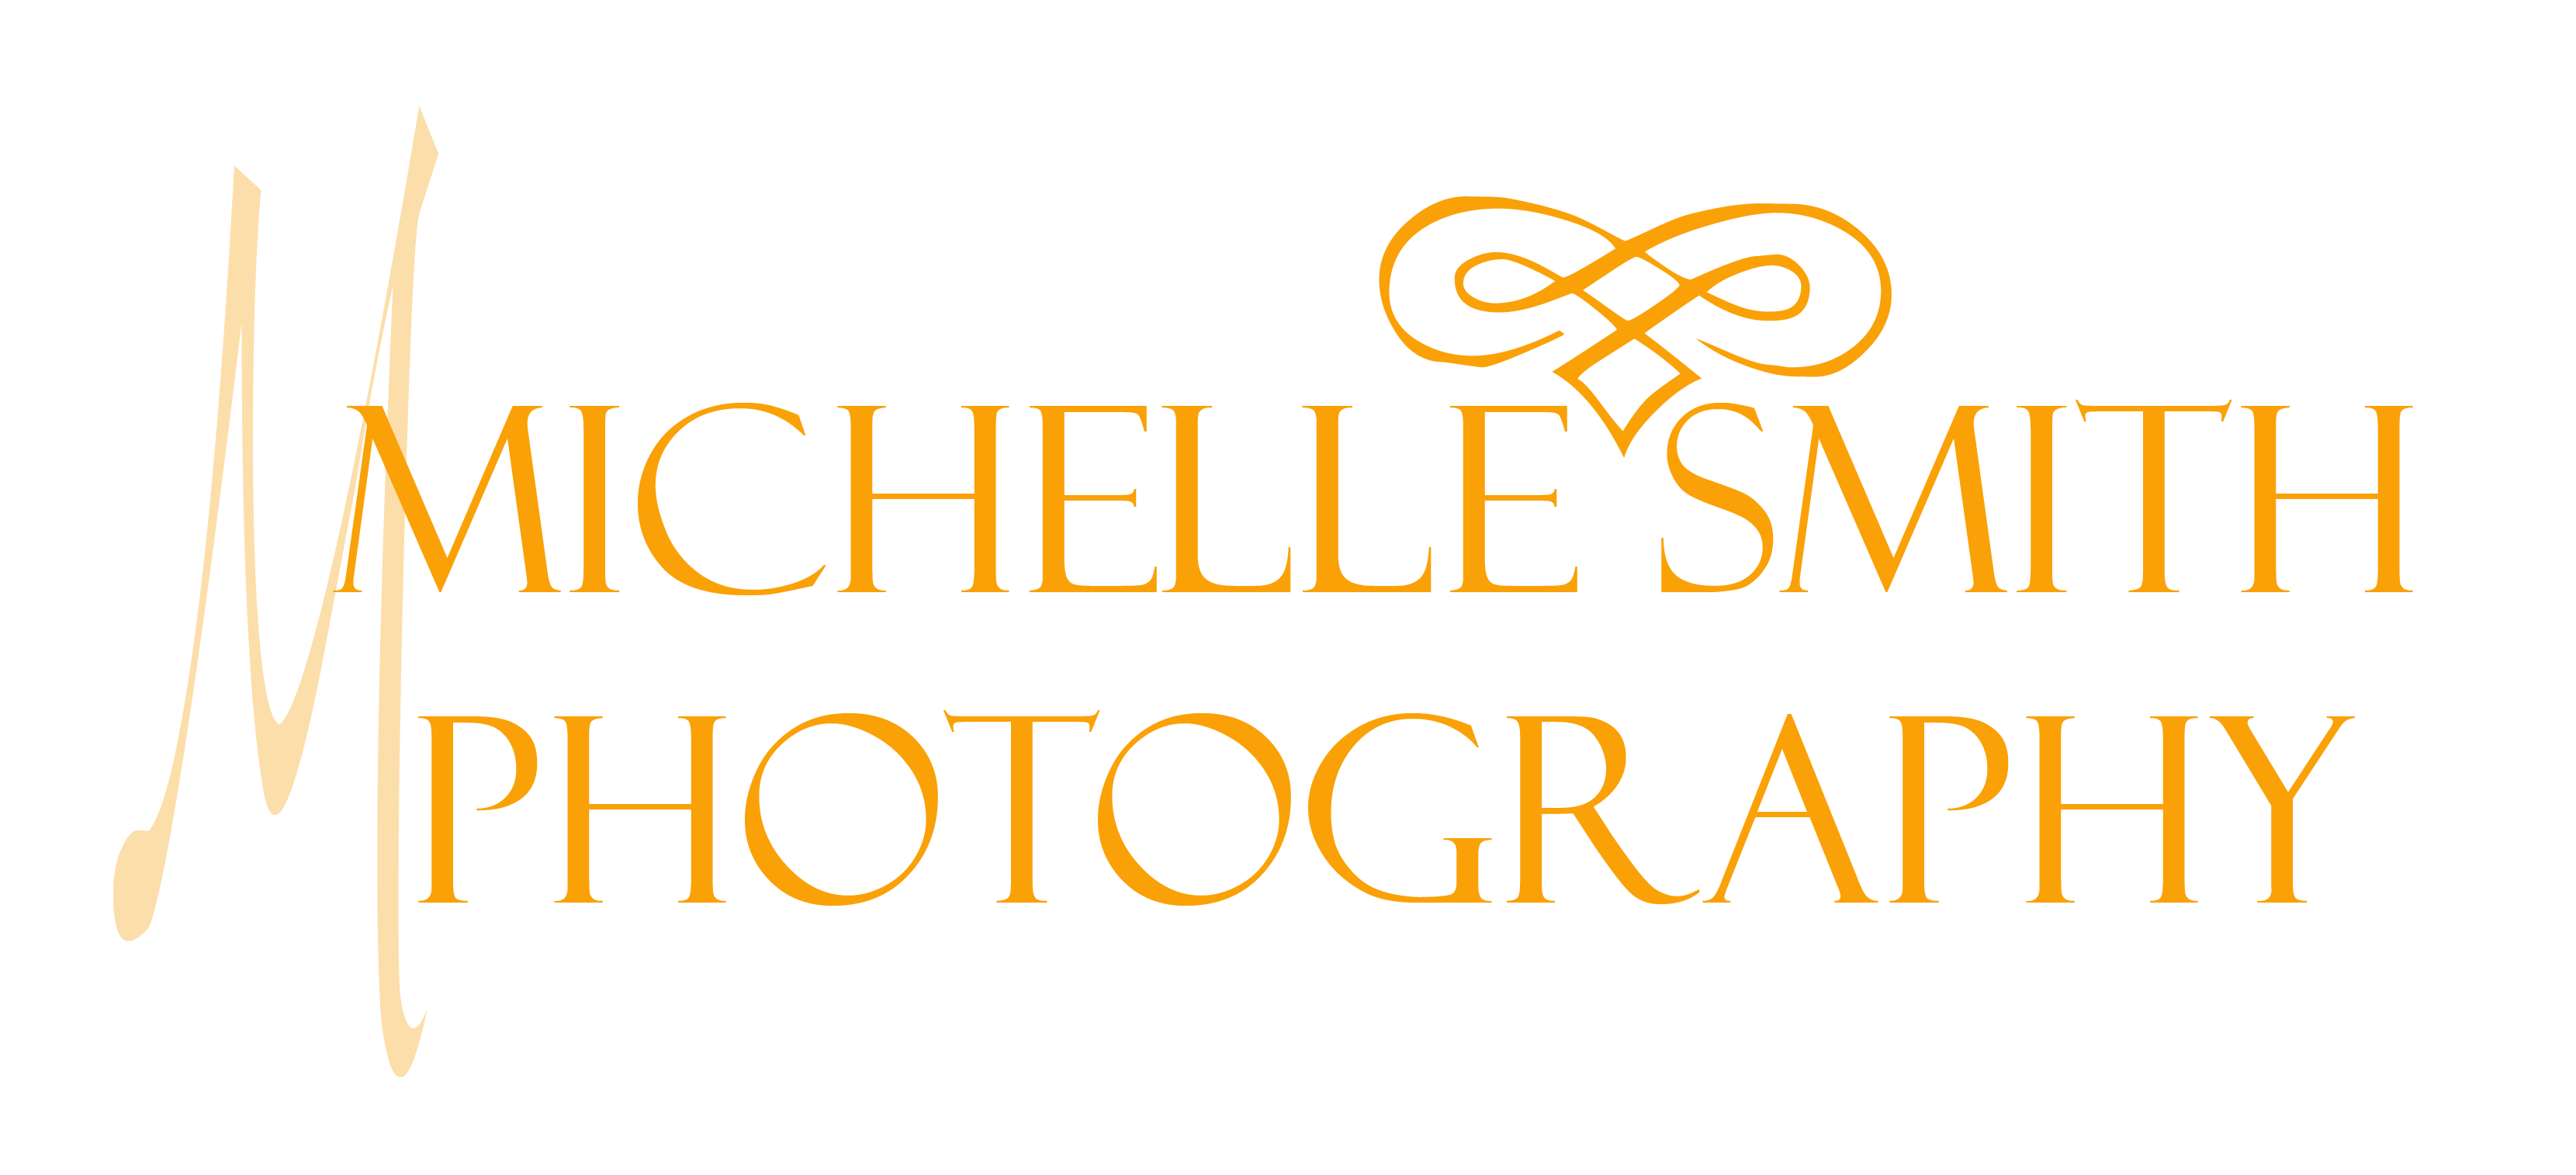 Michelle Smith Photography